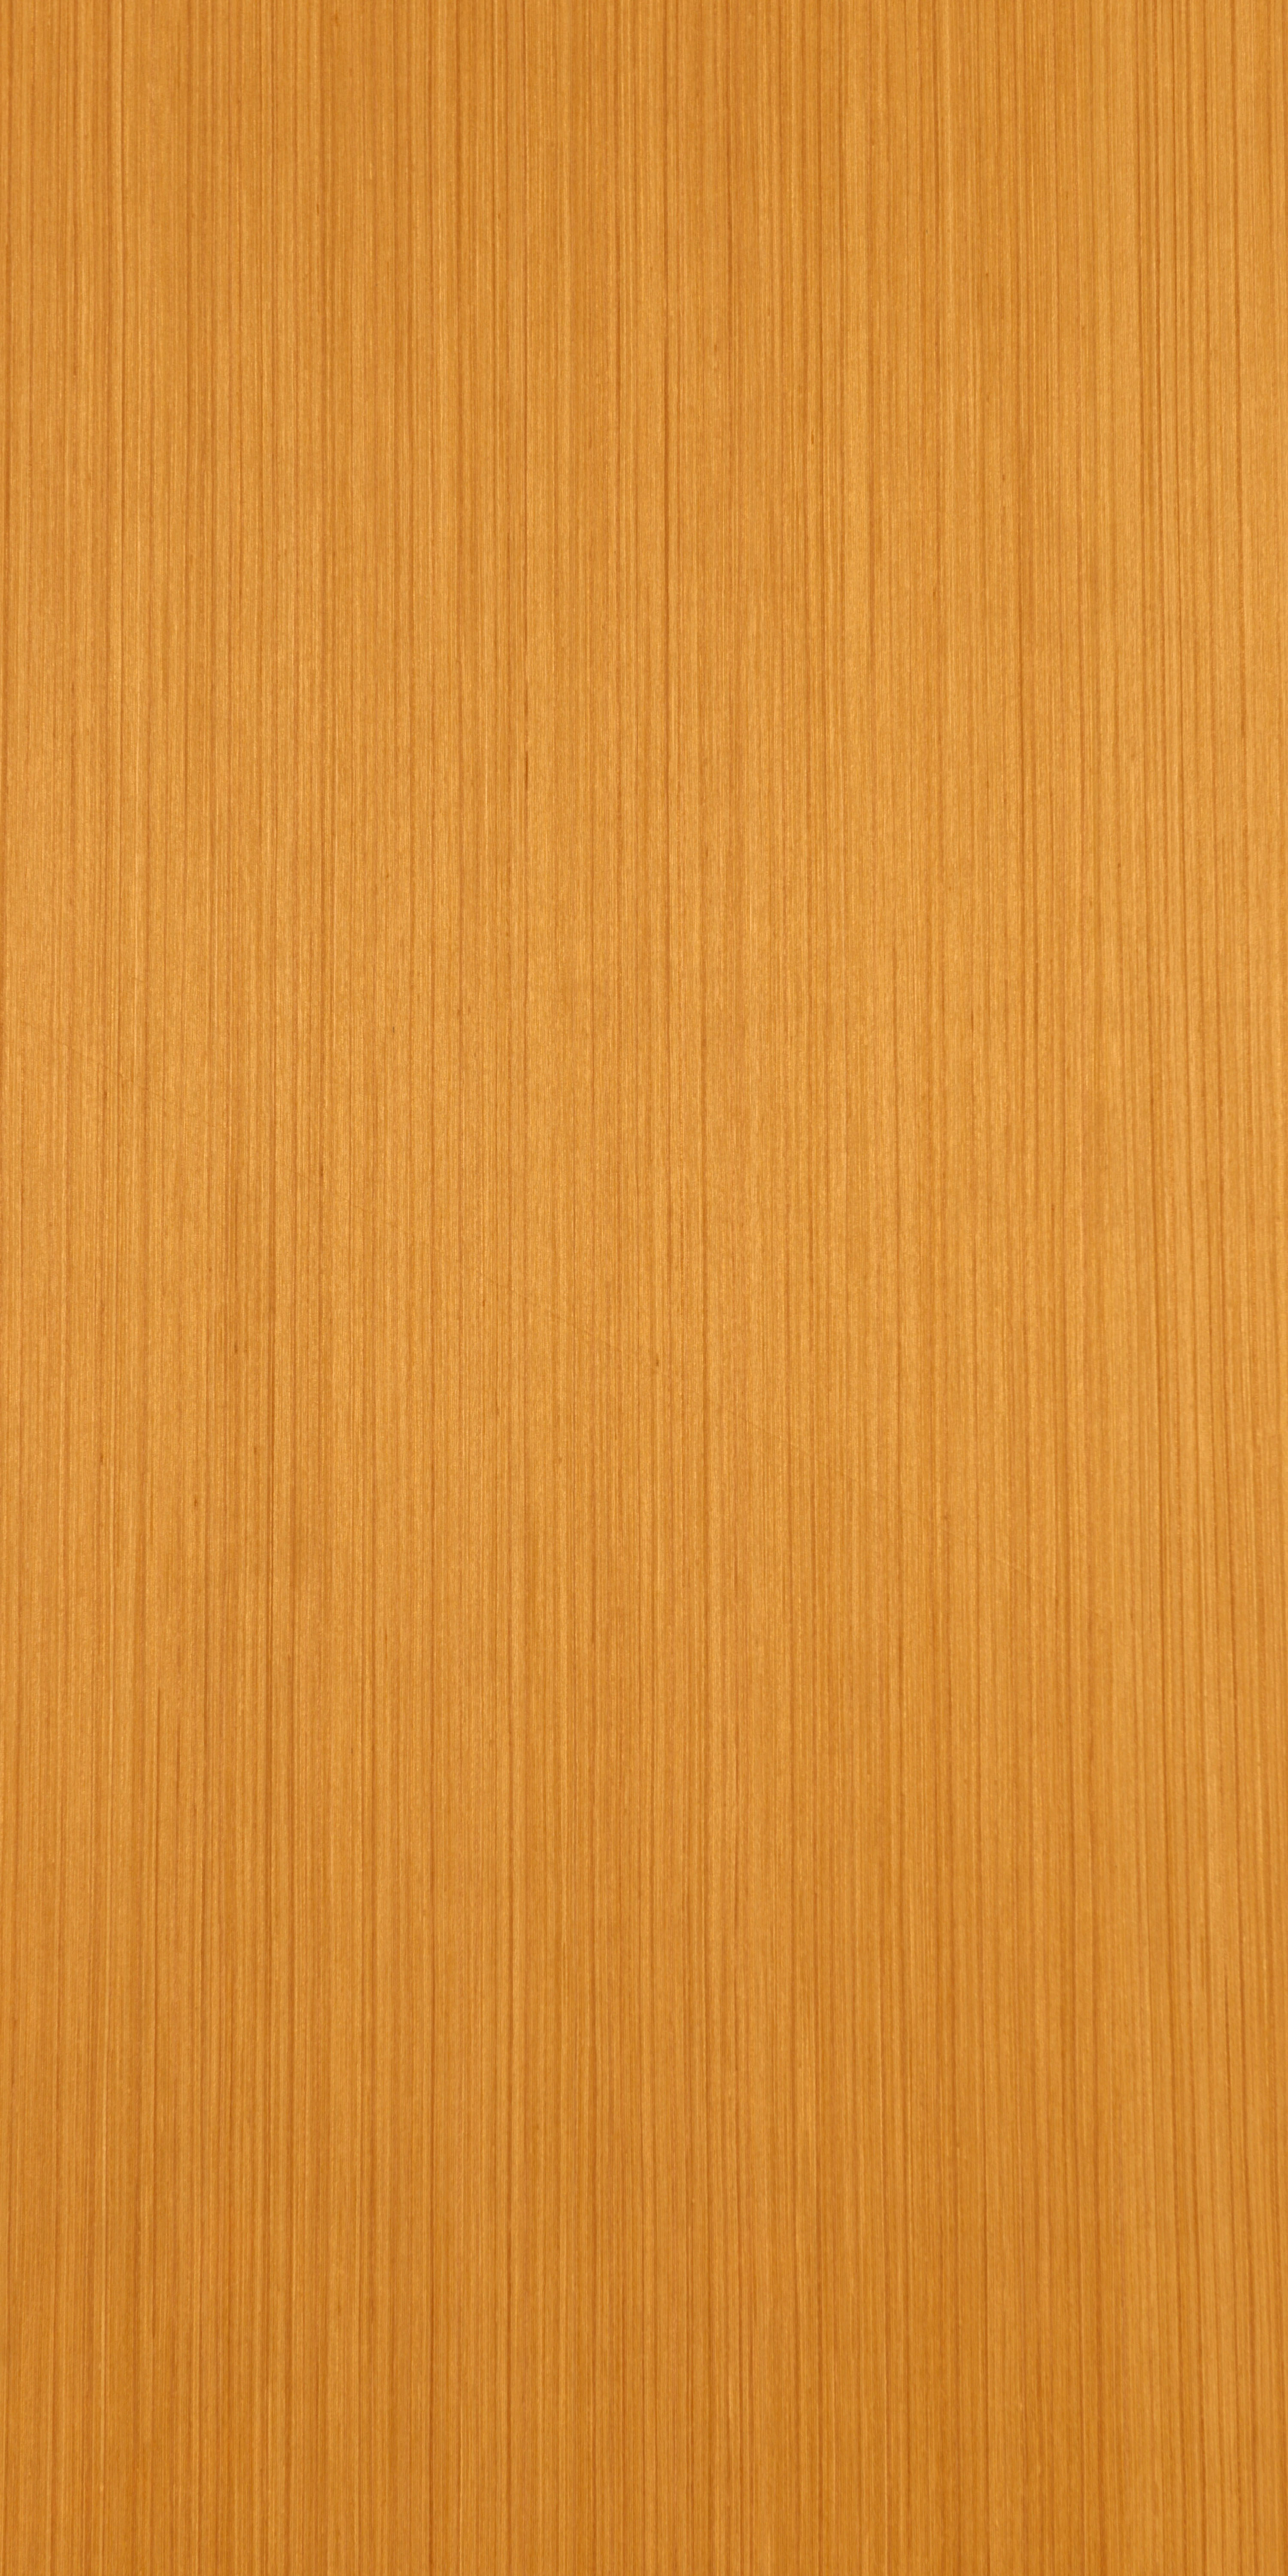 826 Recon Cherry Platino Veneer plywood, Billiona Enterprise Singapore